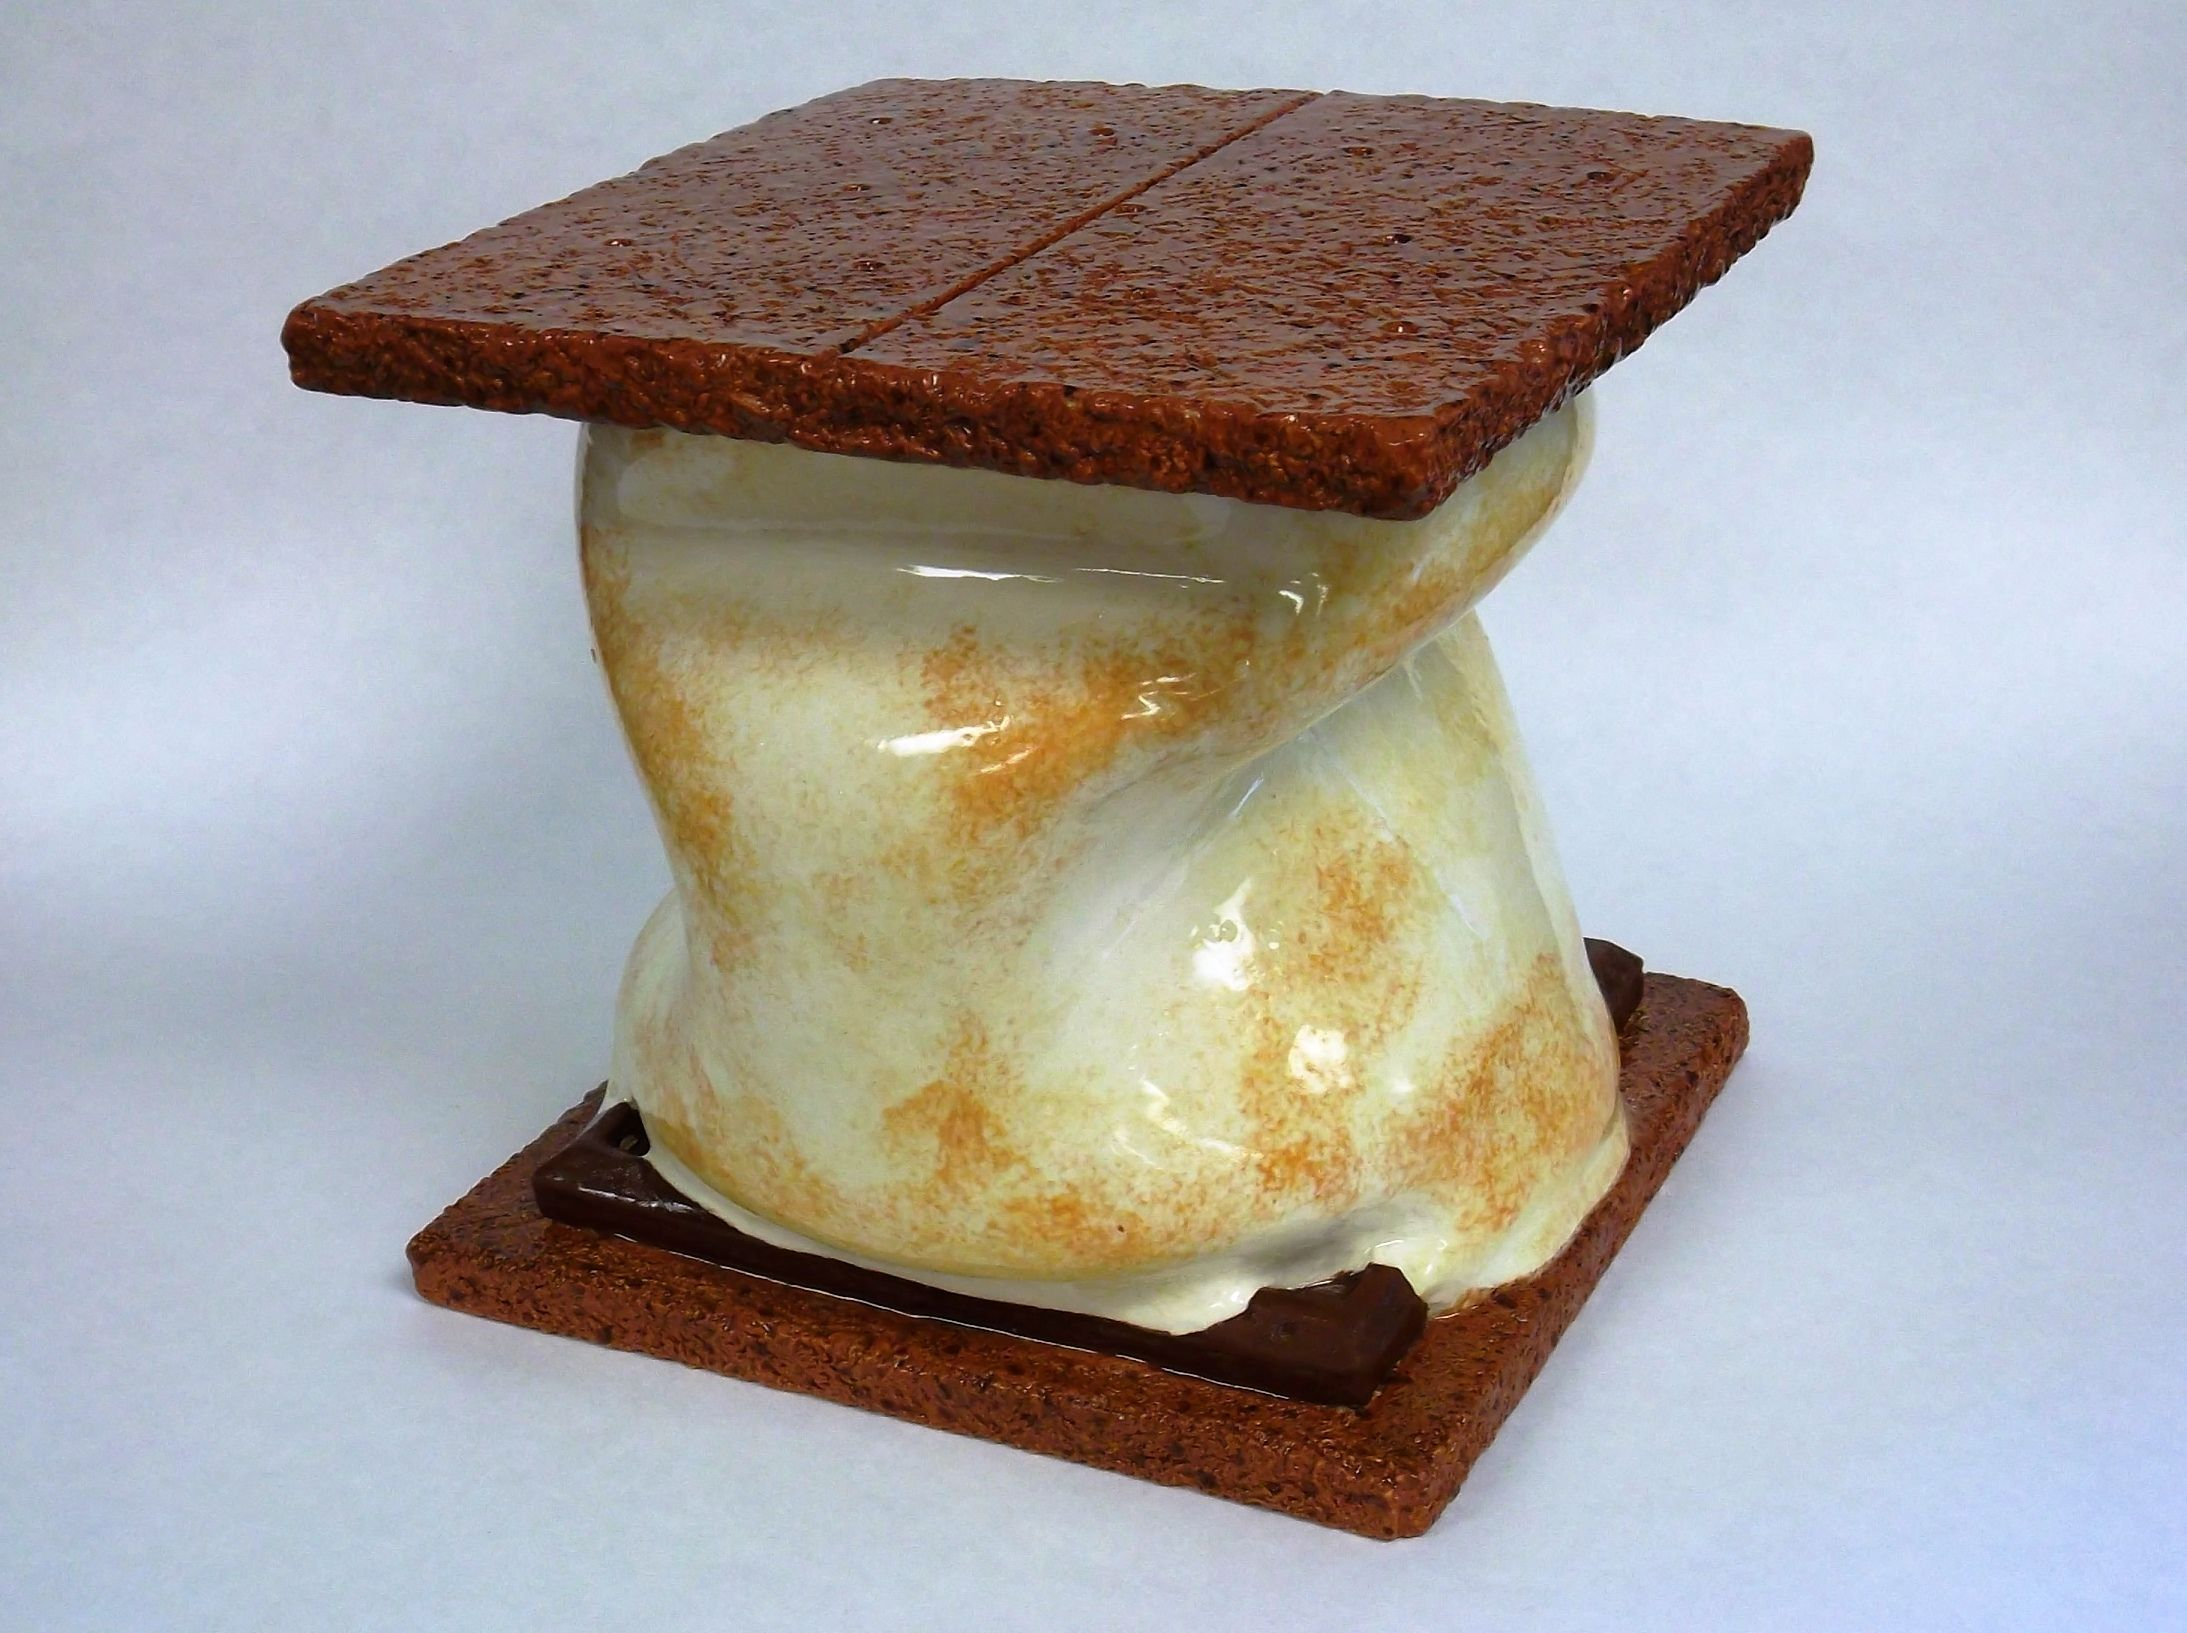 Ceramic Container With Lid Based On Food Ceramiccontainer Ceramicfood Clay Smores Food Sculpture Clay Box Ceramic Clay